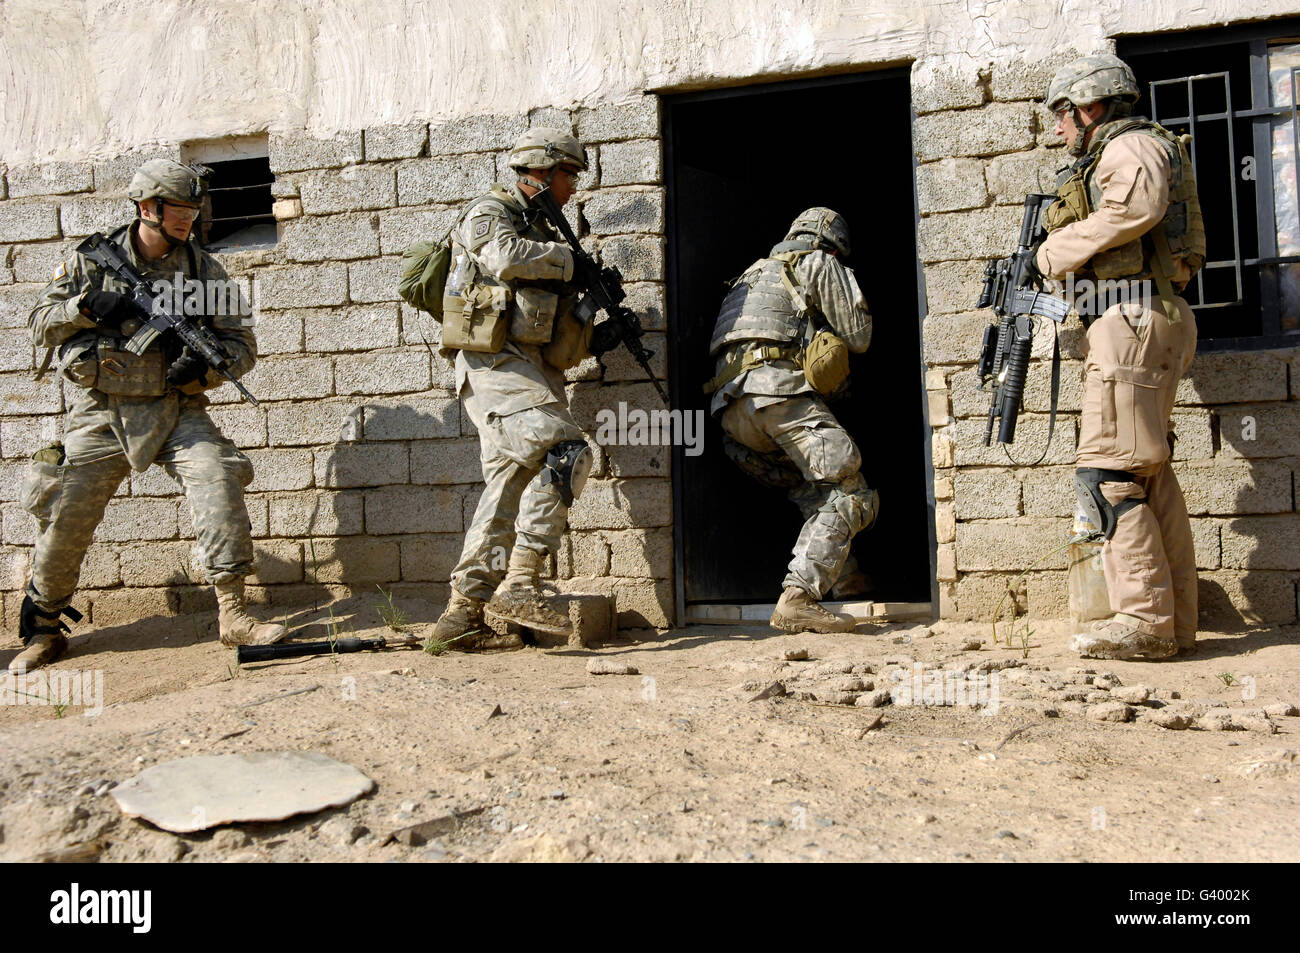 U.S. Army soldiers breaching a house to search for insurgent activities in Zaghiniyat Iraq. & Breaching Door Stock Photos \u0026 Breaching Door Stock Images - Alamy